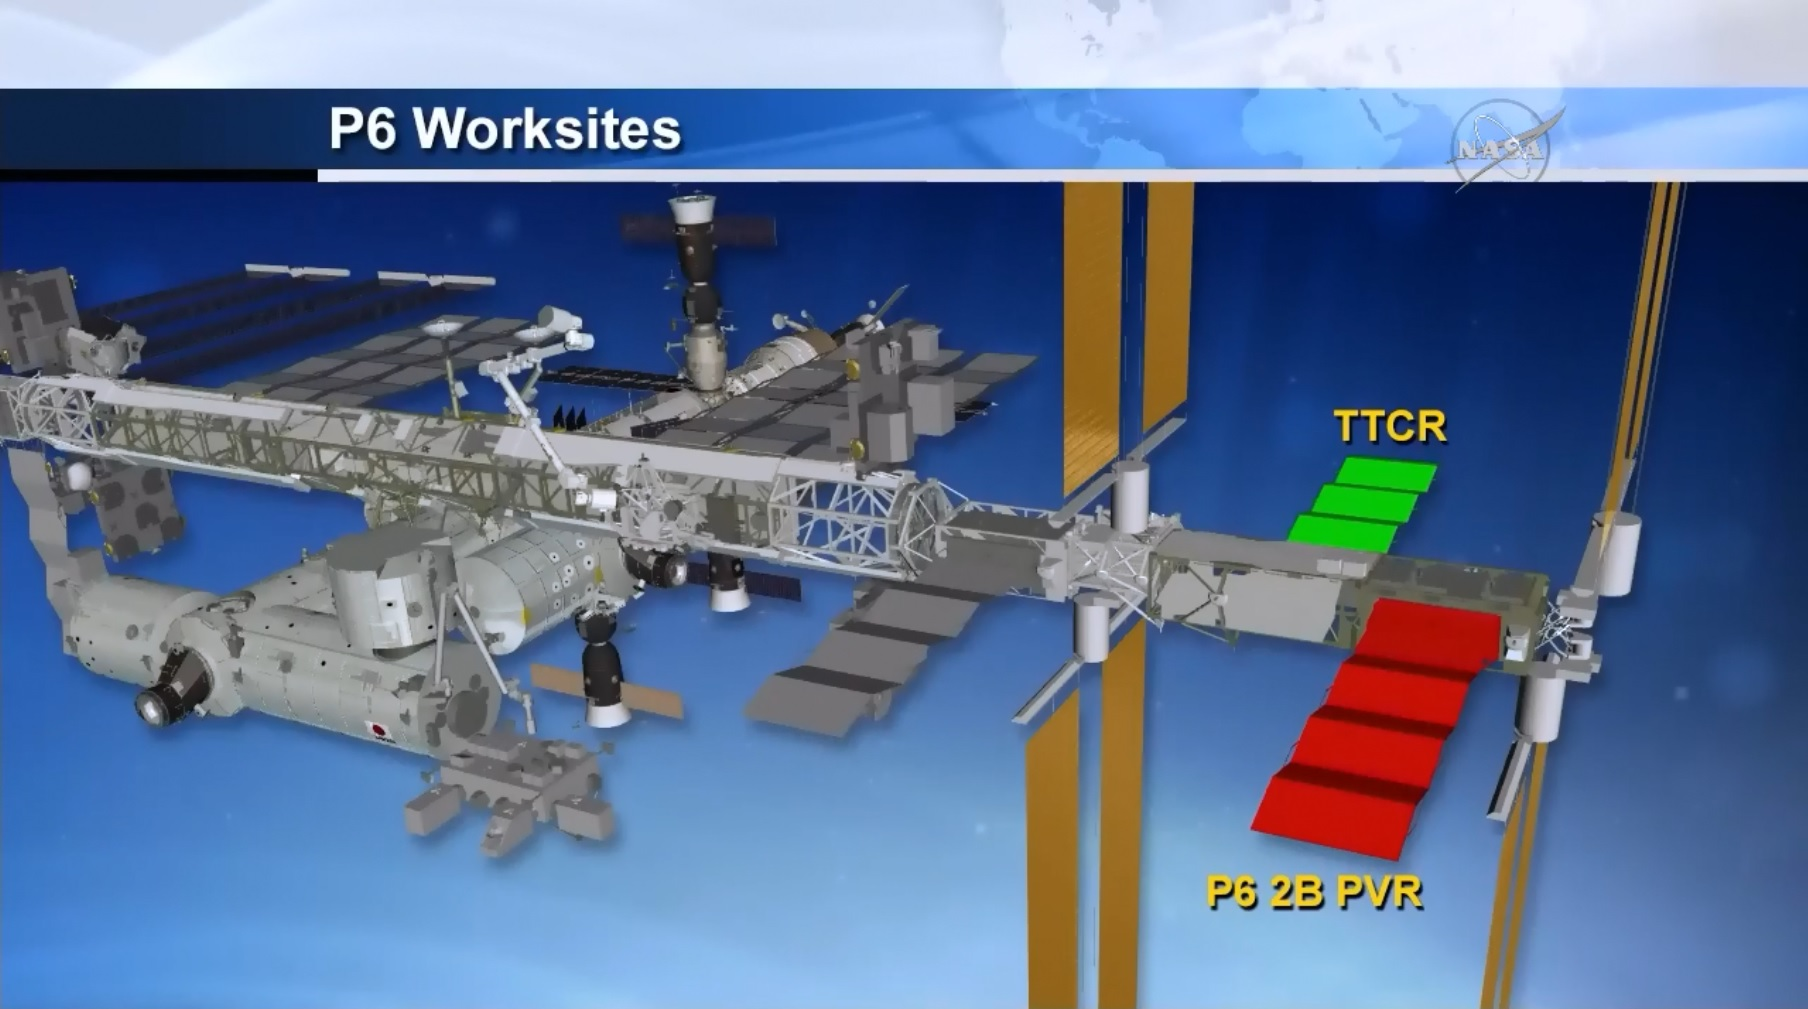 ISS Astronauts set for challenging Spacewalk to ...